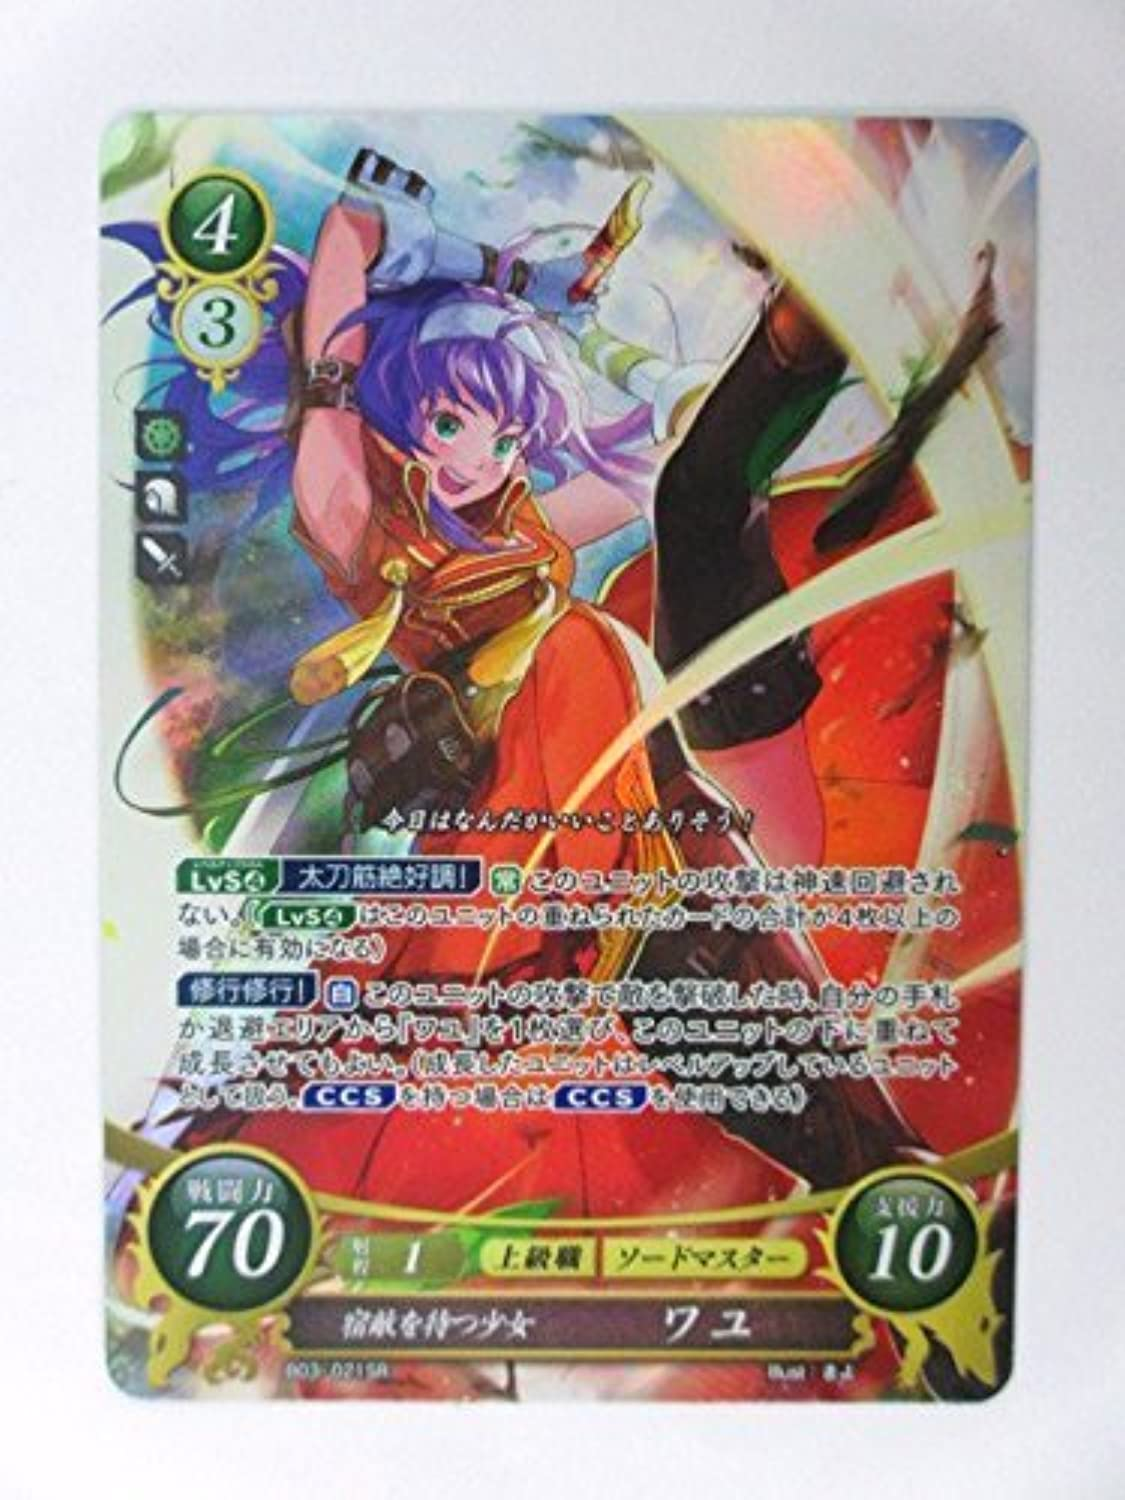 Fire Emblem 0 Cipher Card Game Booster Part 3 Mia Mia Mia